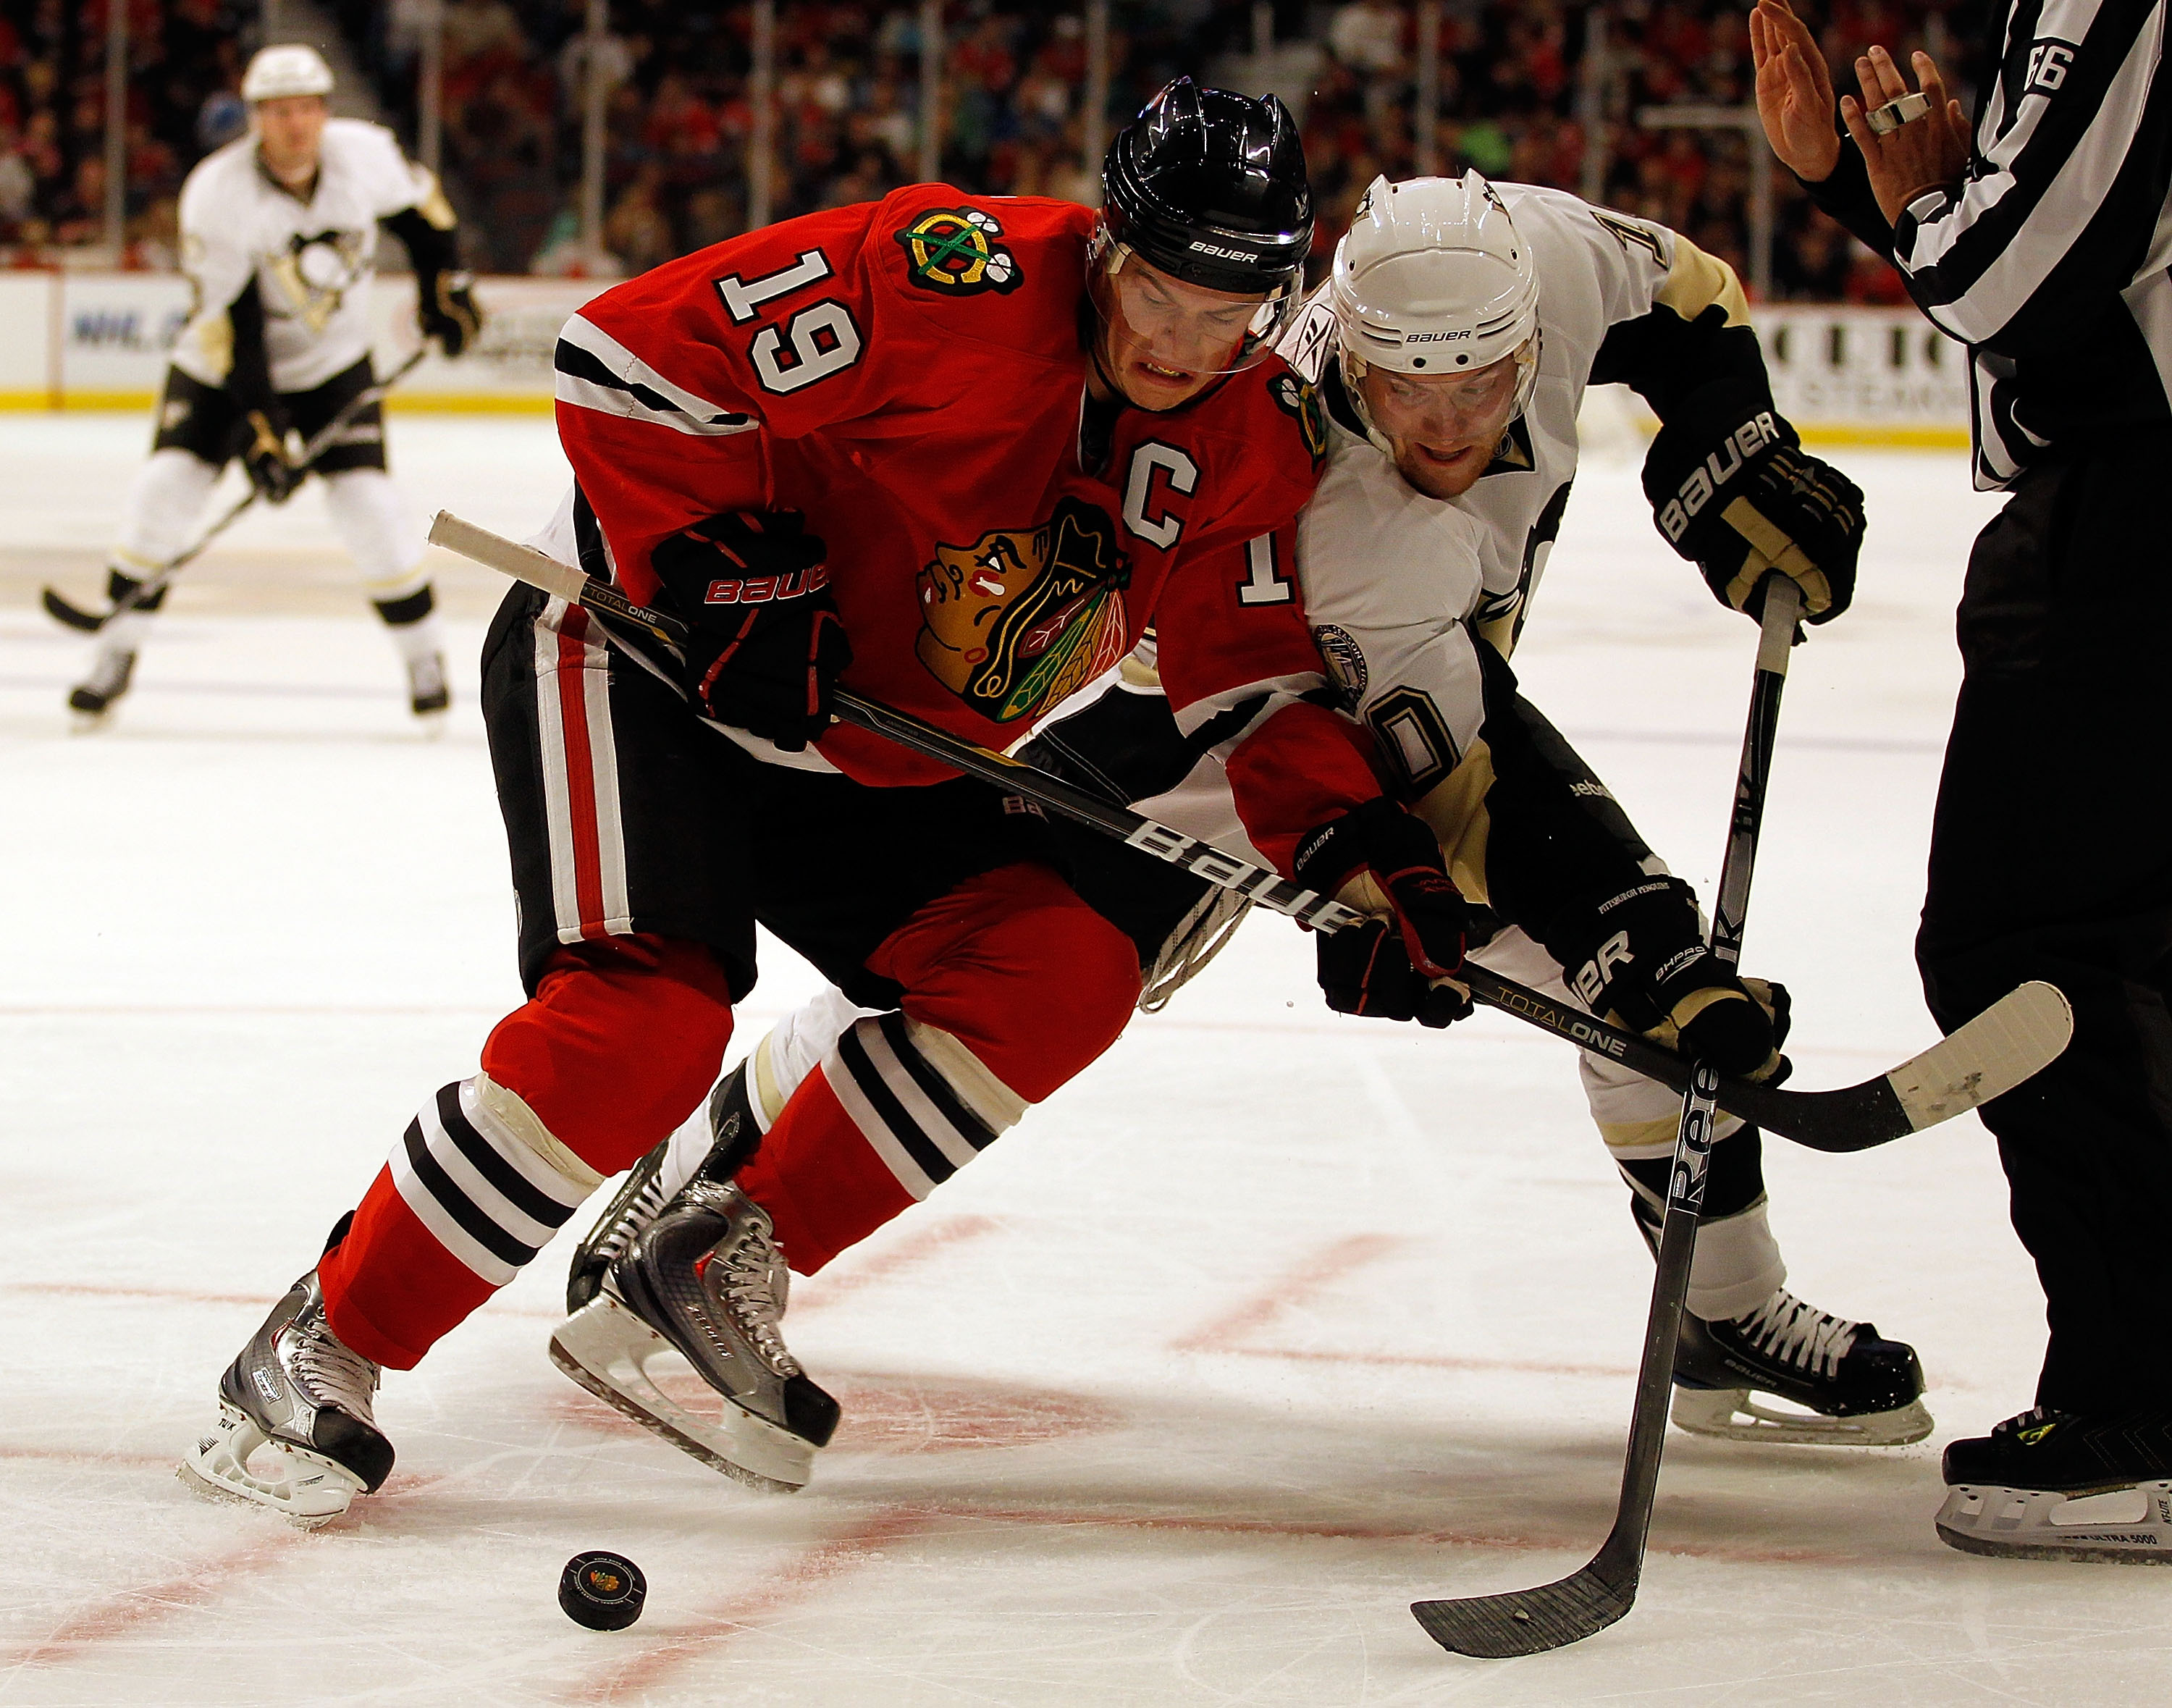 CHICAGO - OCTOBER 01: Jonathan Toews #19 of the Chicago Blackhawks and Mark Letestu #10 of the Pittsburgh Penguins battle for the puck after a face-off during a pre-season game at the United Center on October 1, 2010 in Chicago, Illinois. The Blackhawks d